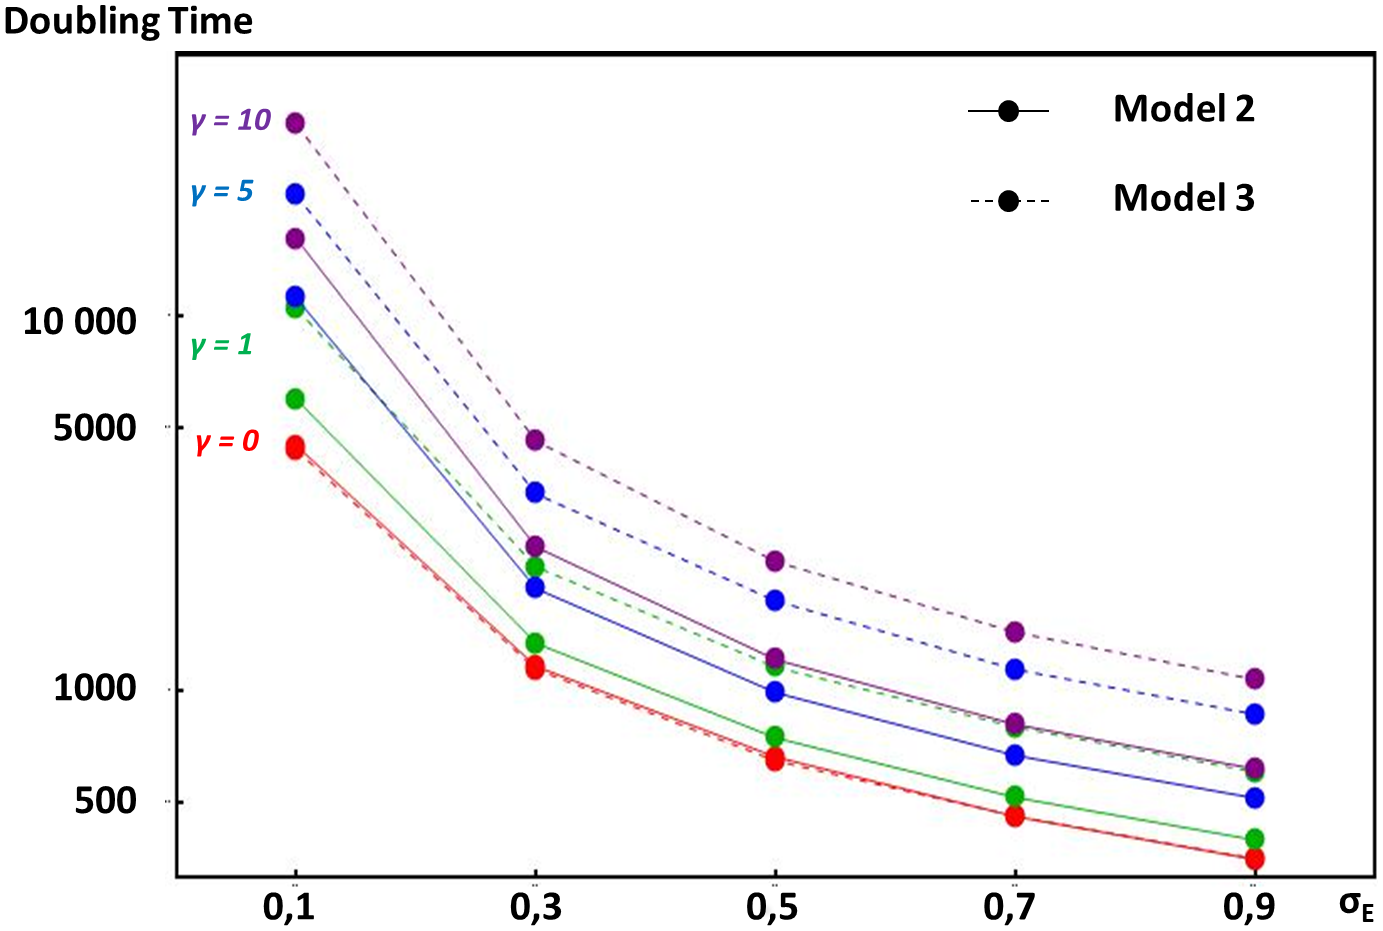 Comparative doubling times of enhancer strength escalation in models considering different selection pressures acting on overall gene expression.